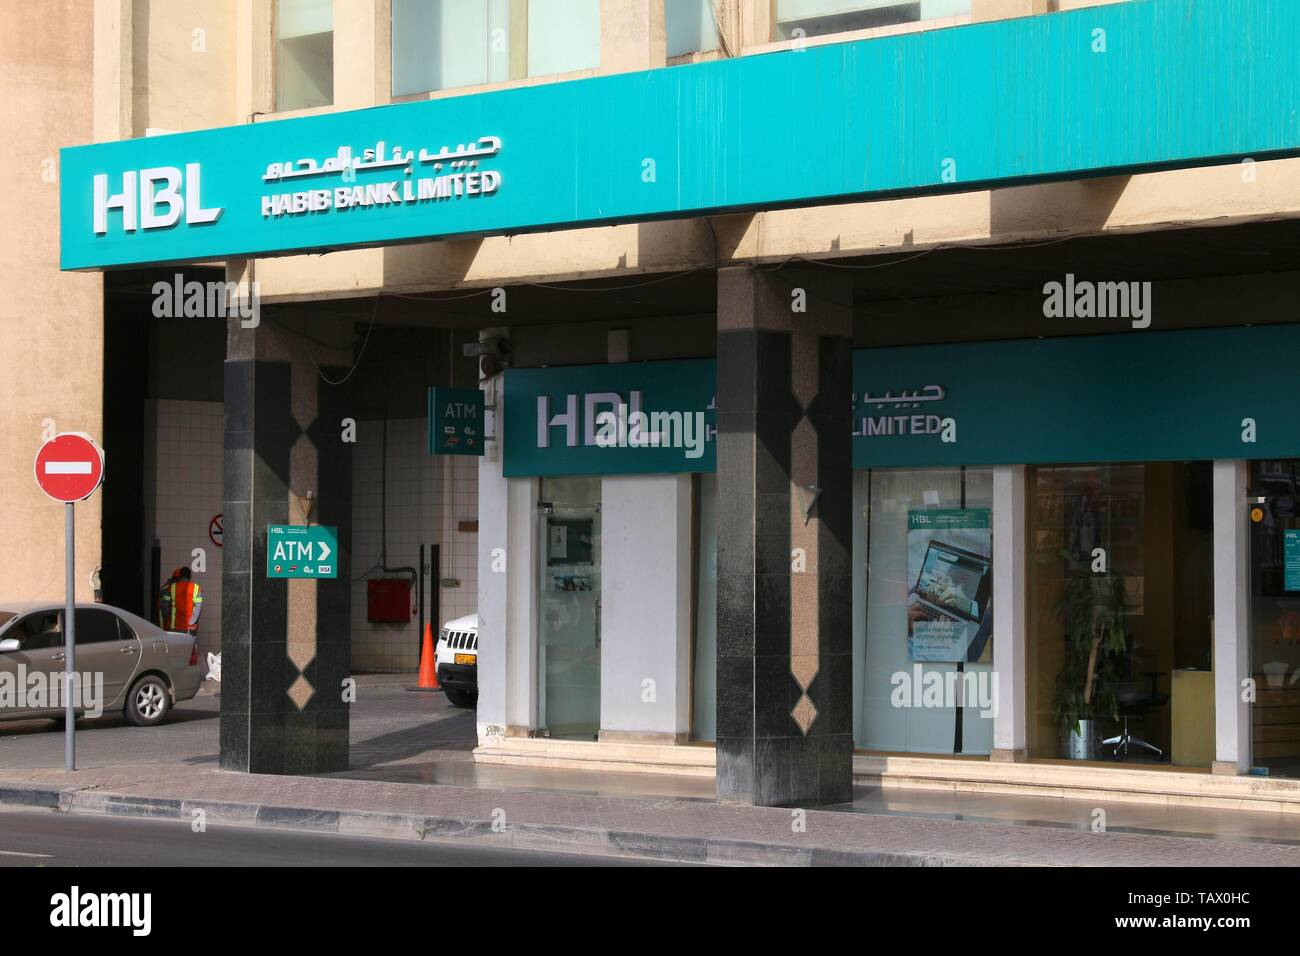 DUBAI, UAE - DECEMBER 9, 2017: Habib Bank Limited branch in Dubai, UAE. HBL is the largest Pakistani bank by assets. - Stock Image